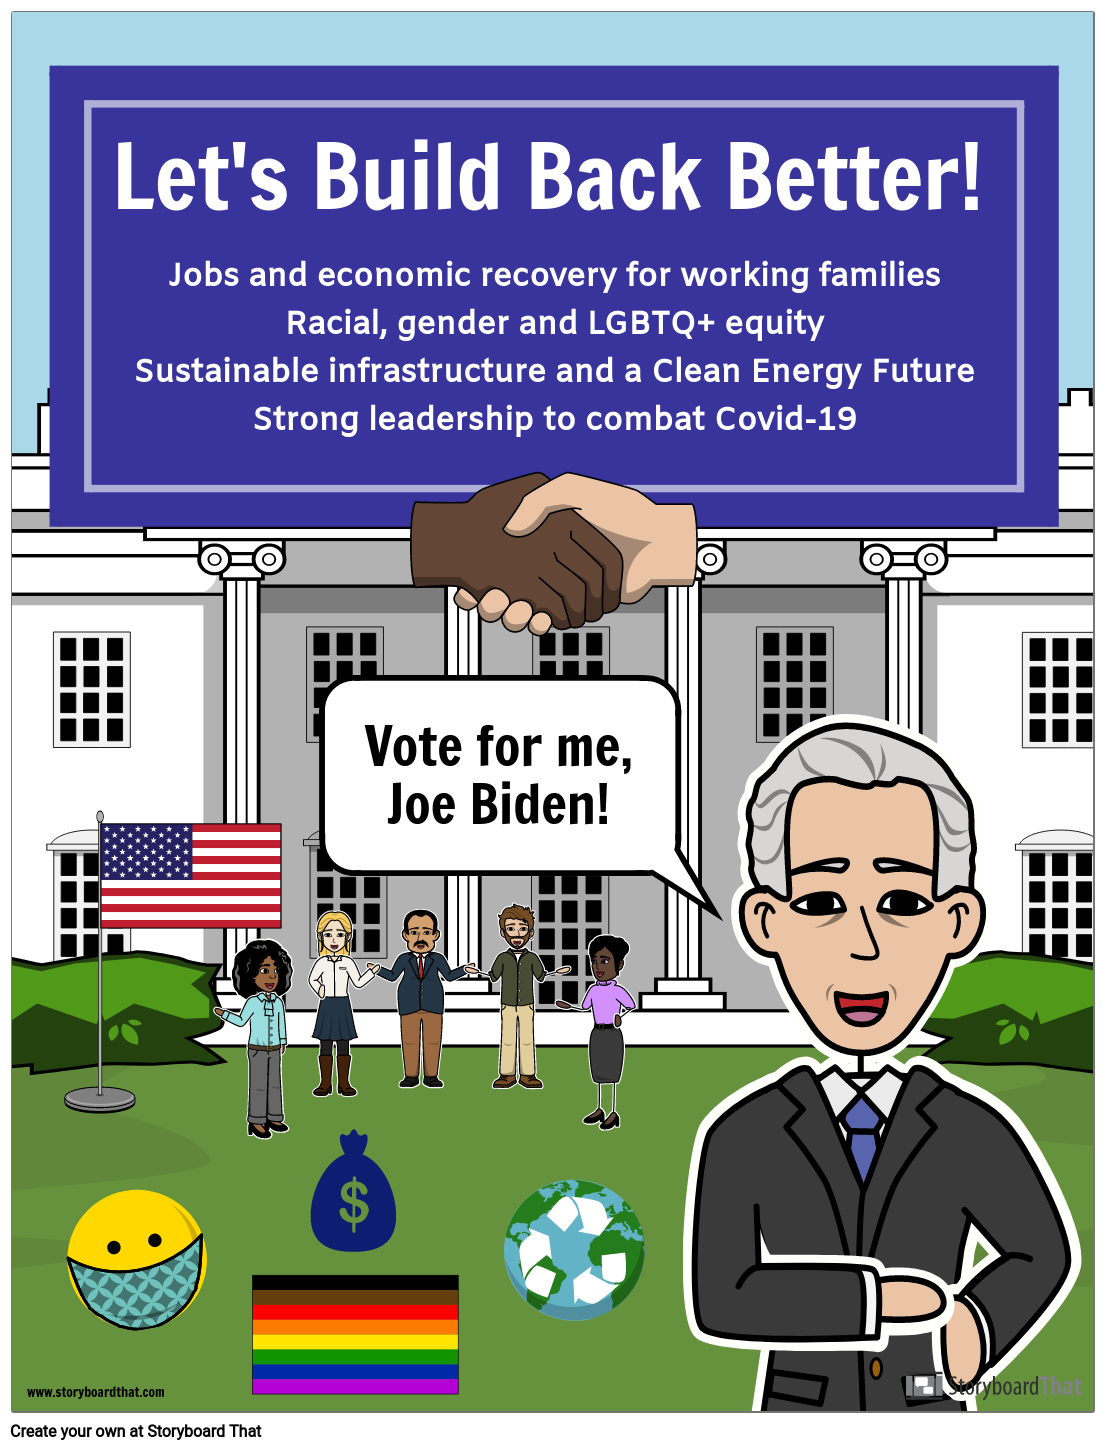 Elections: Campaign Poster for Joe Biden